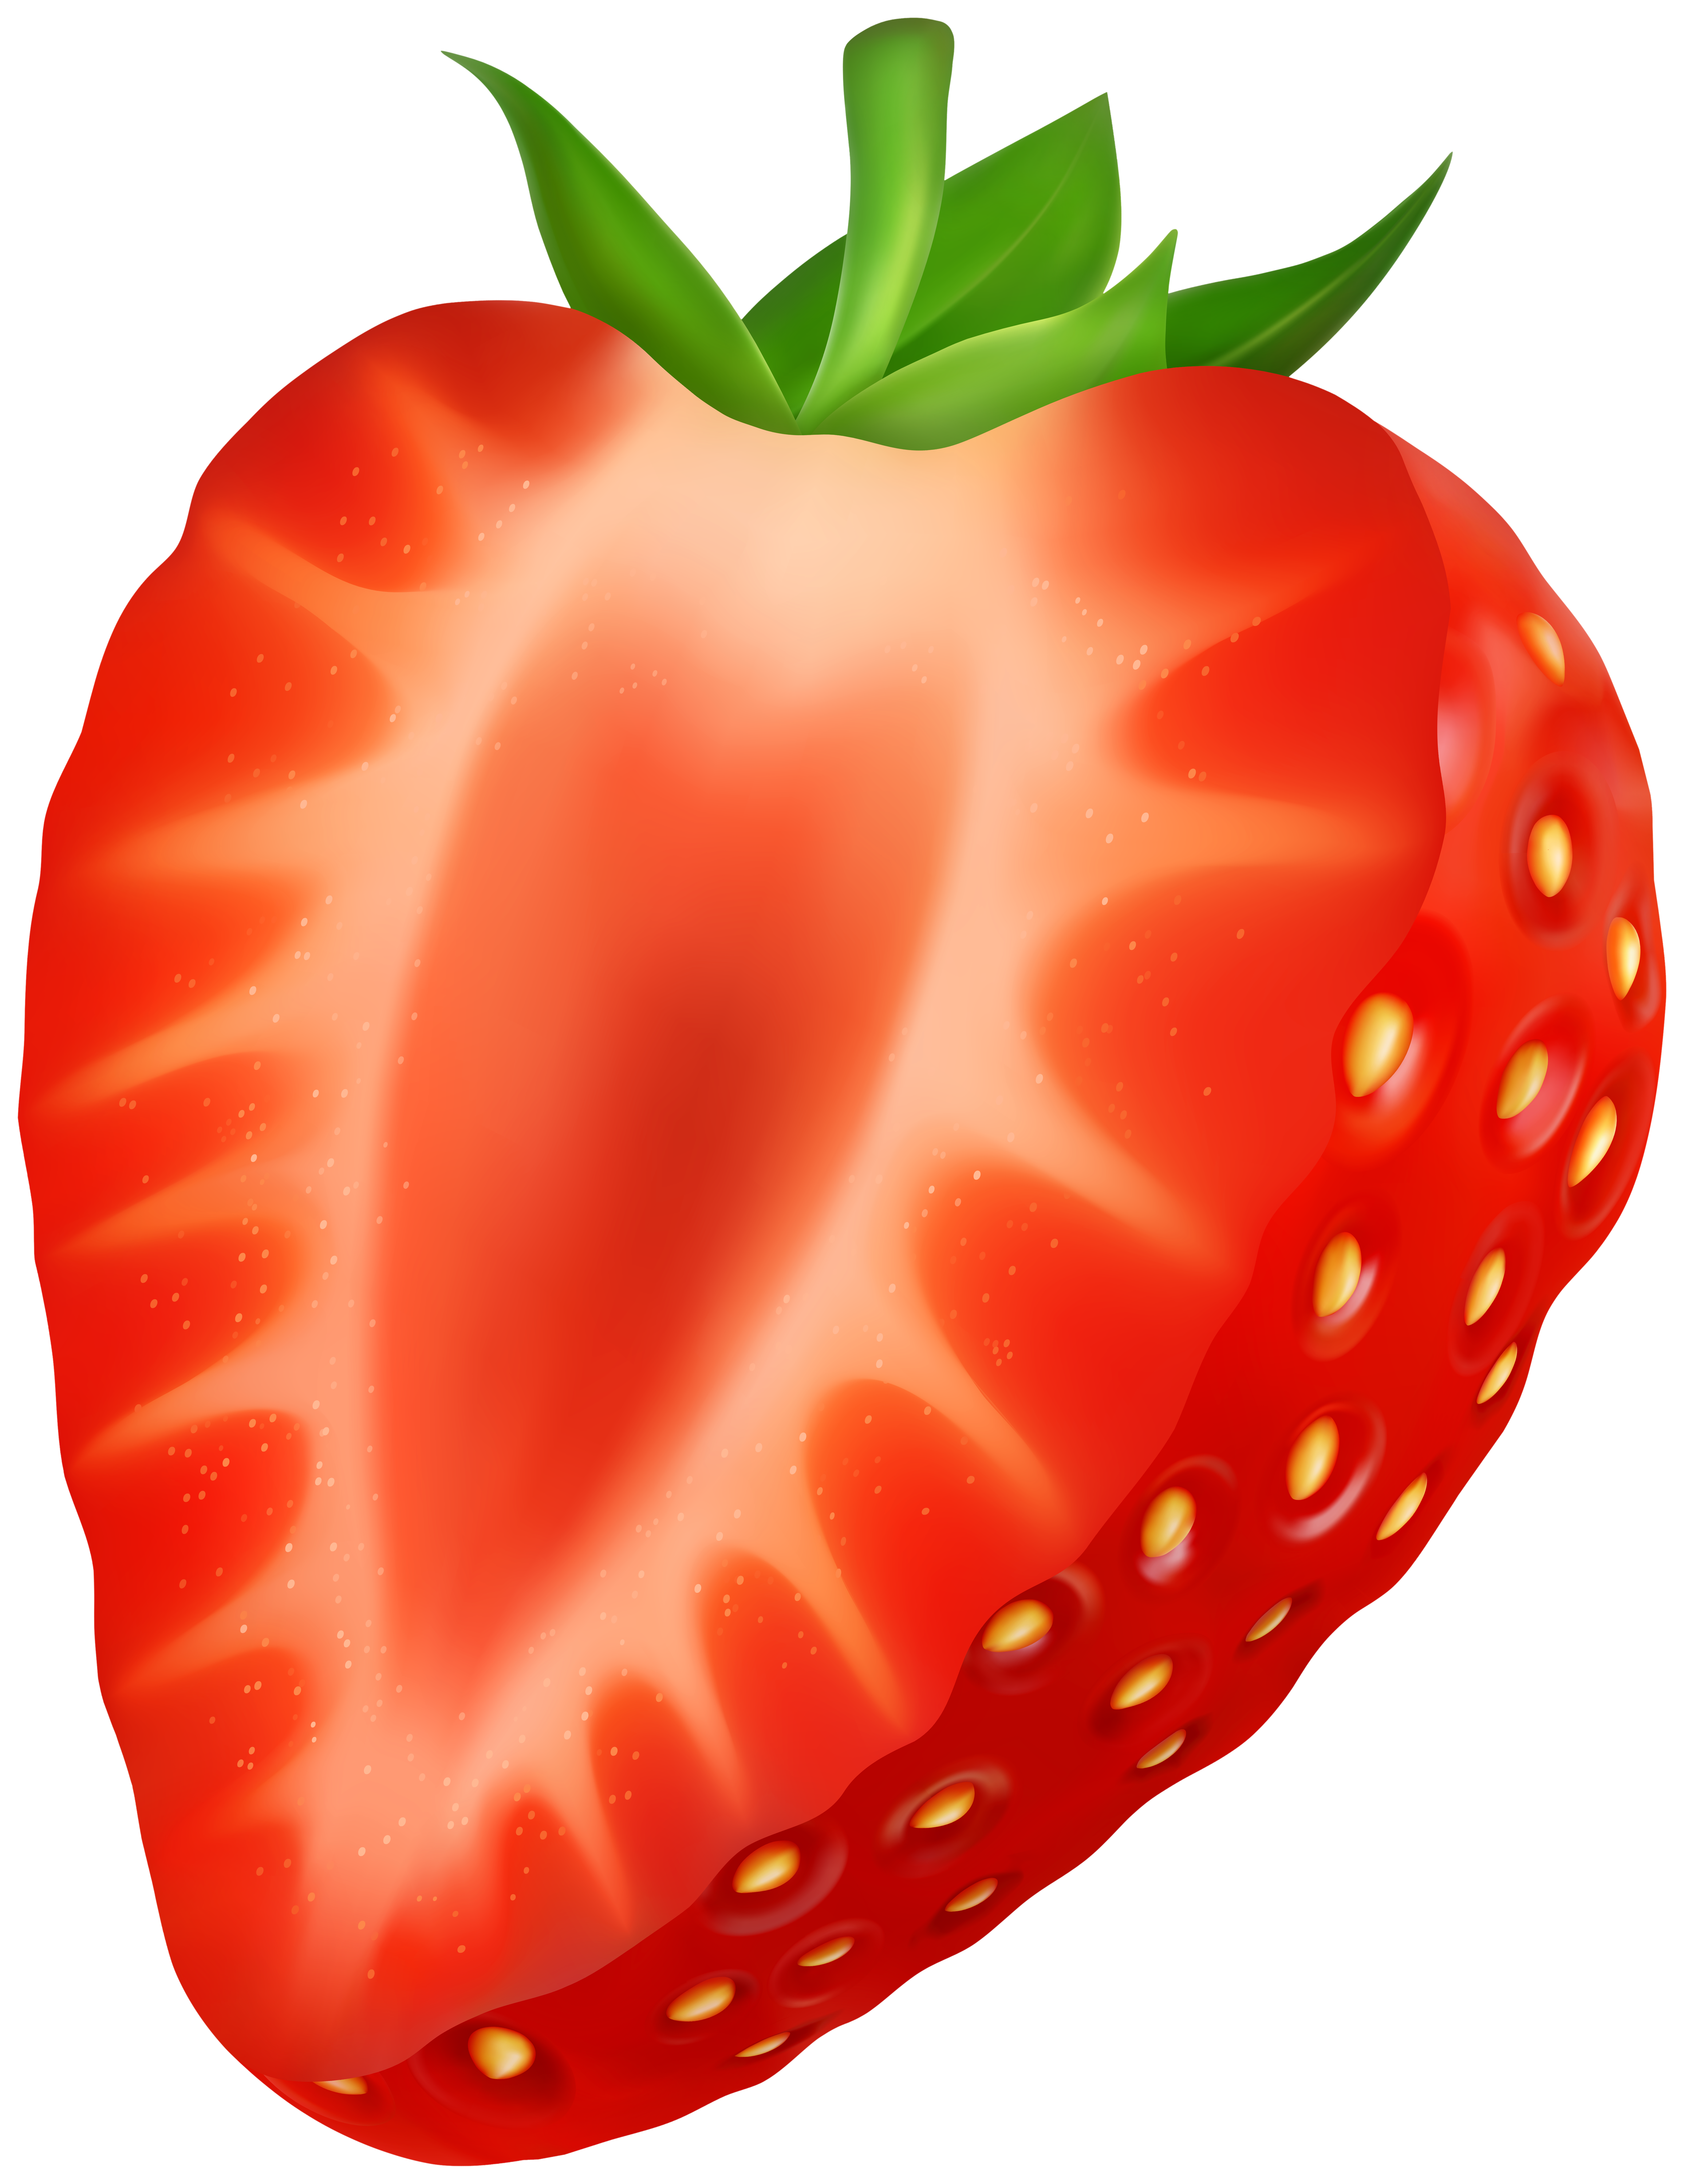 Strawberry image gallery yopriceville. Strawberries clipart half